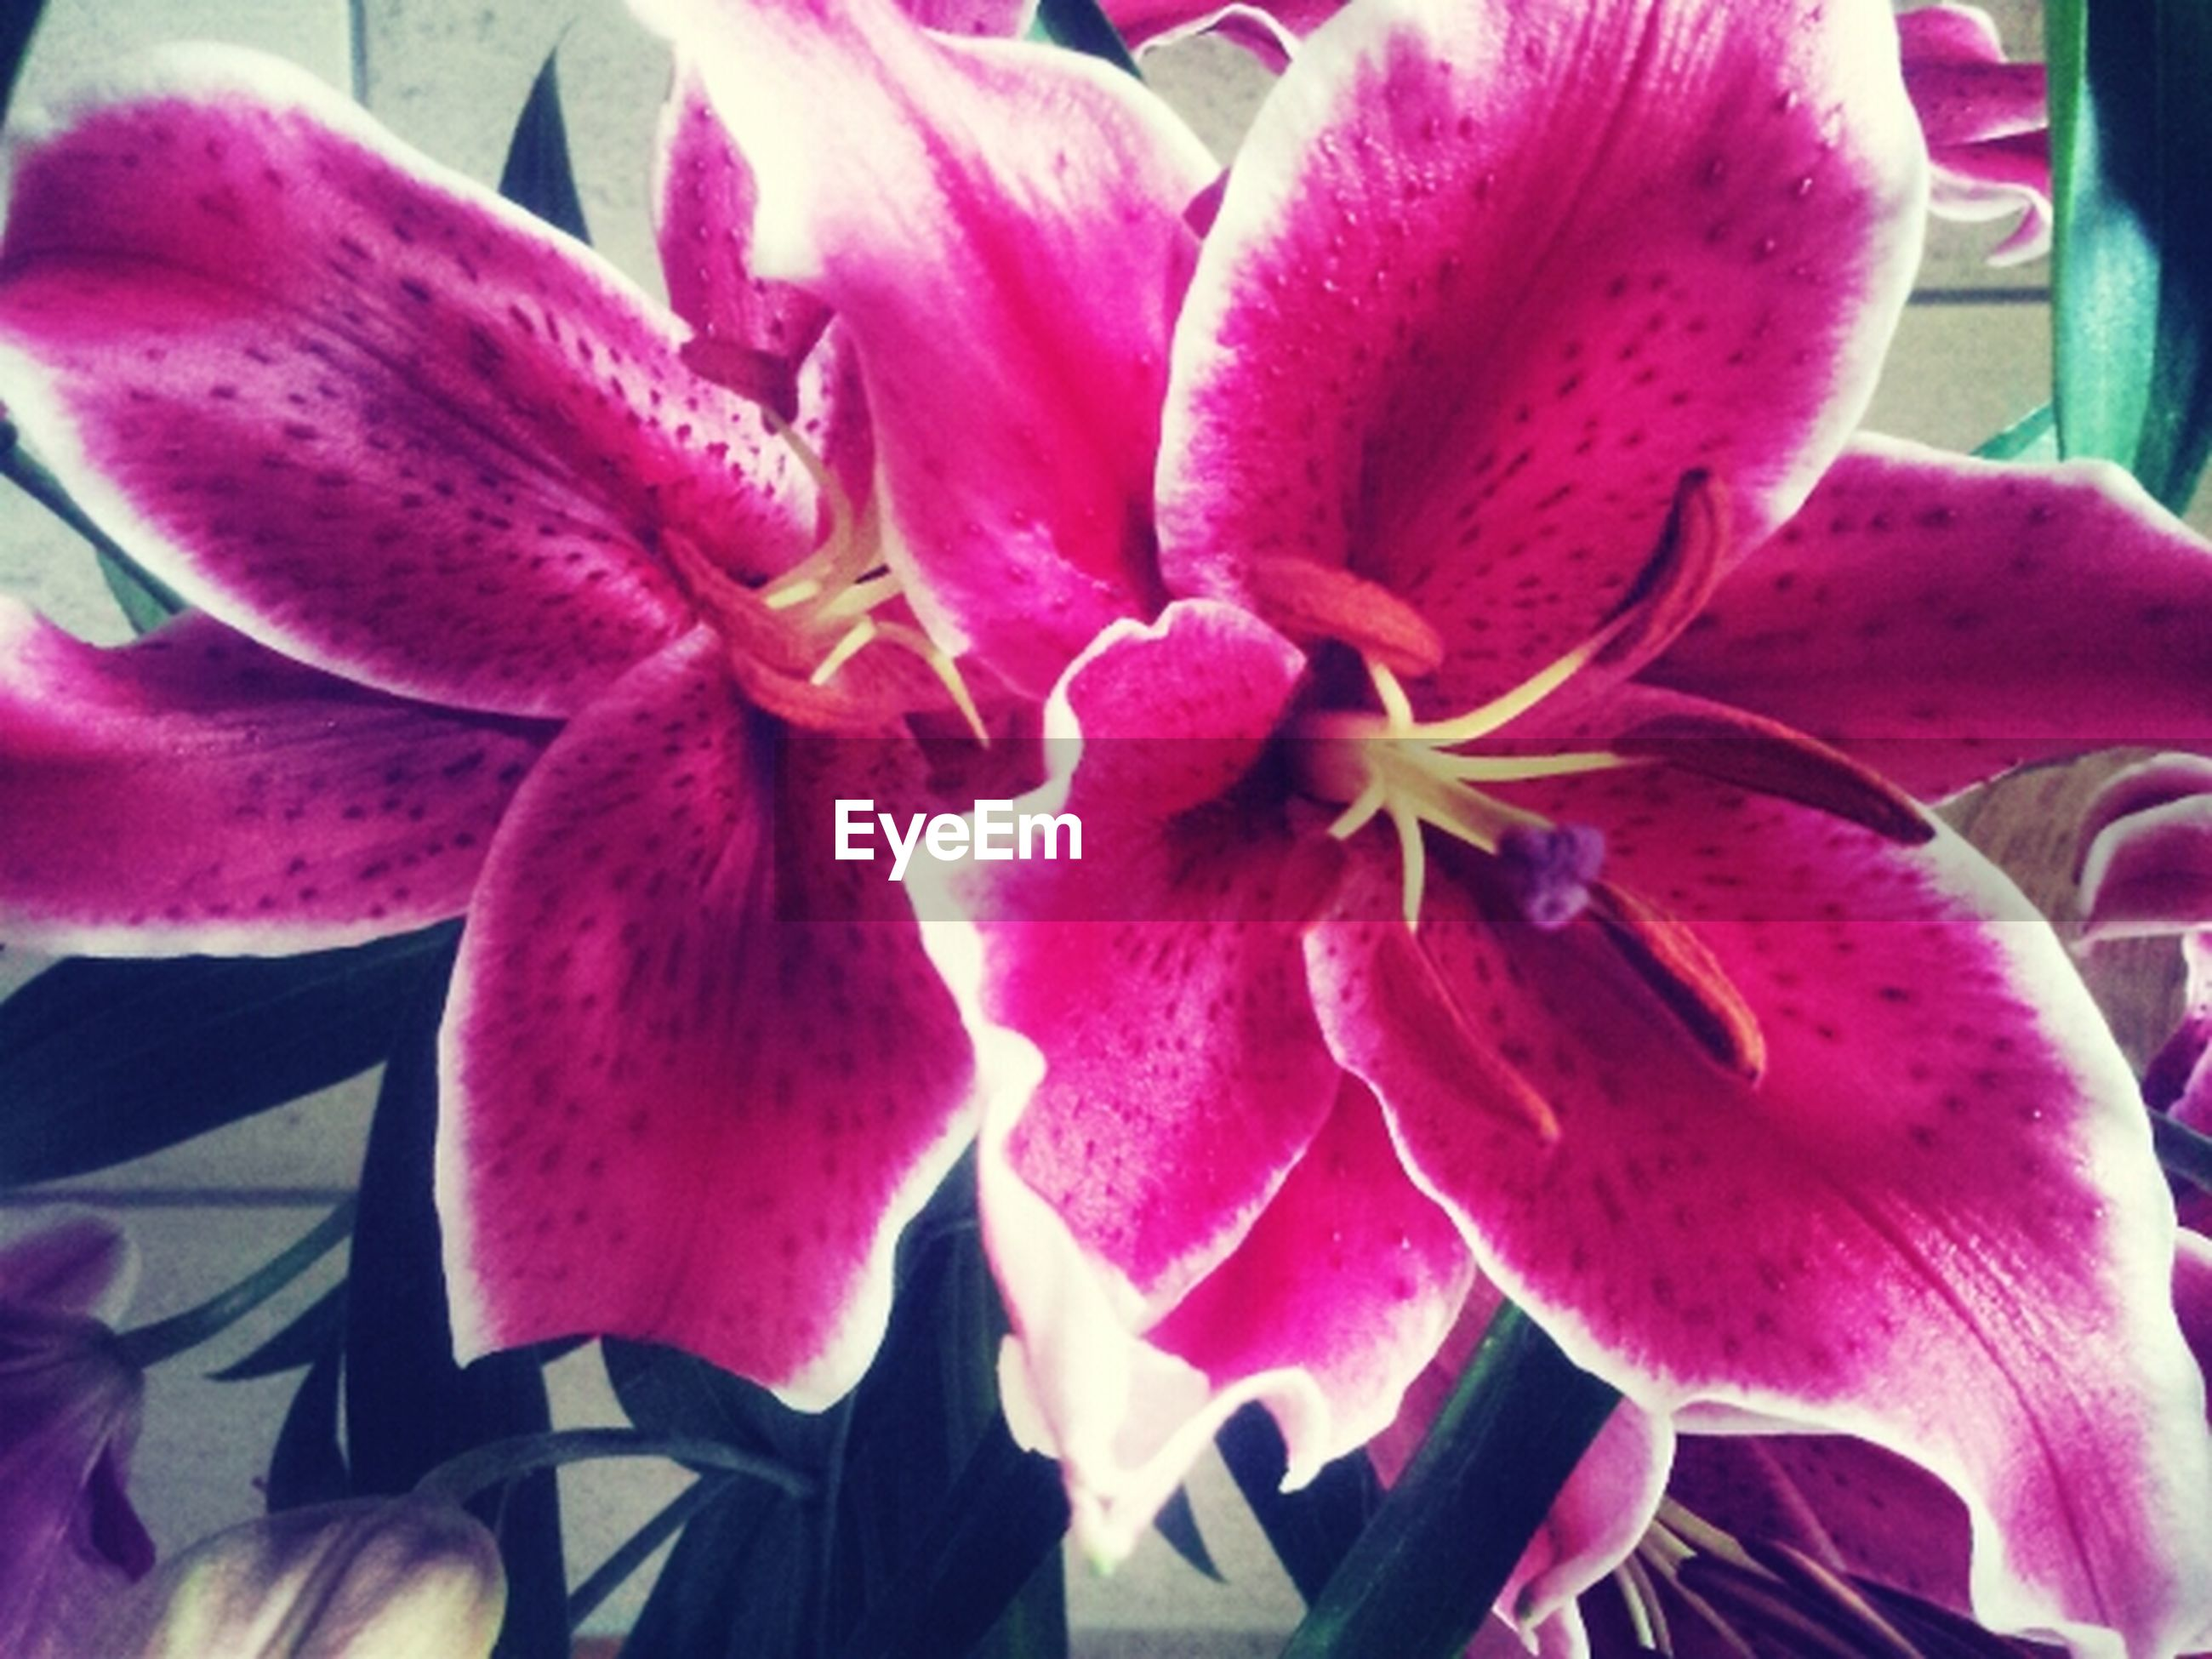 flower, petal, freshness, flower head, fragility, pink color, growth, close-up, beauty in nature, nature, blooming, stamen, pollen, plant, in bloom, pink, orchid, focus on foreground, no people, day